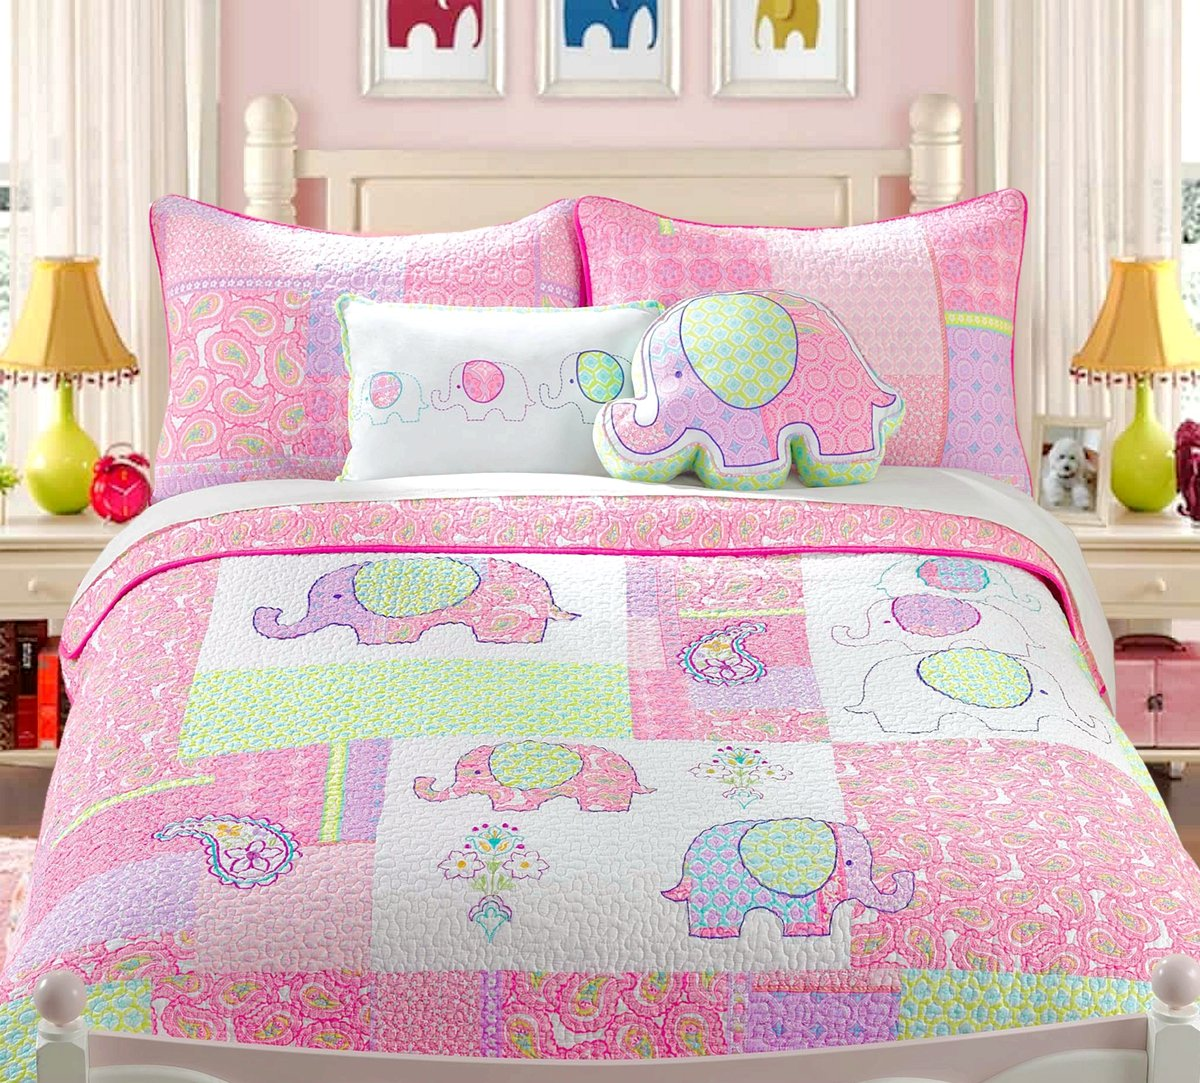 Cozy Line Home Fashions 4-Piece Quilt Bedding Set, Cute Elephant Pink Light Purple 100% COTTON Bedspread Coverlet Set, Gifts for Kids Girls (Twin- 4pc: 1 quilt + 1 shams + 2 Decorative Pillows )